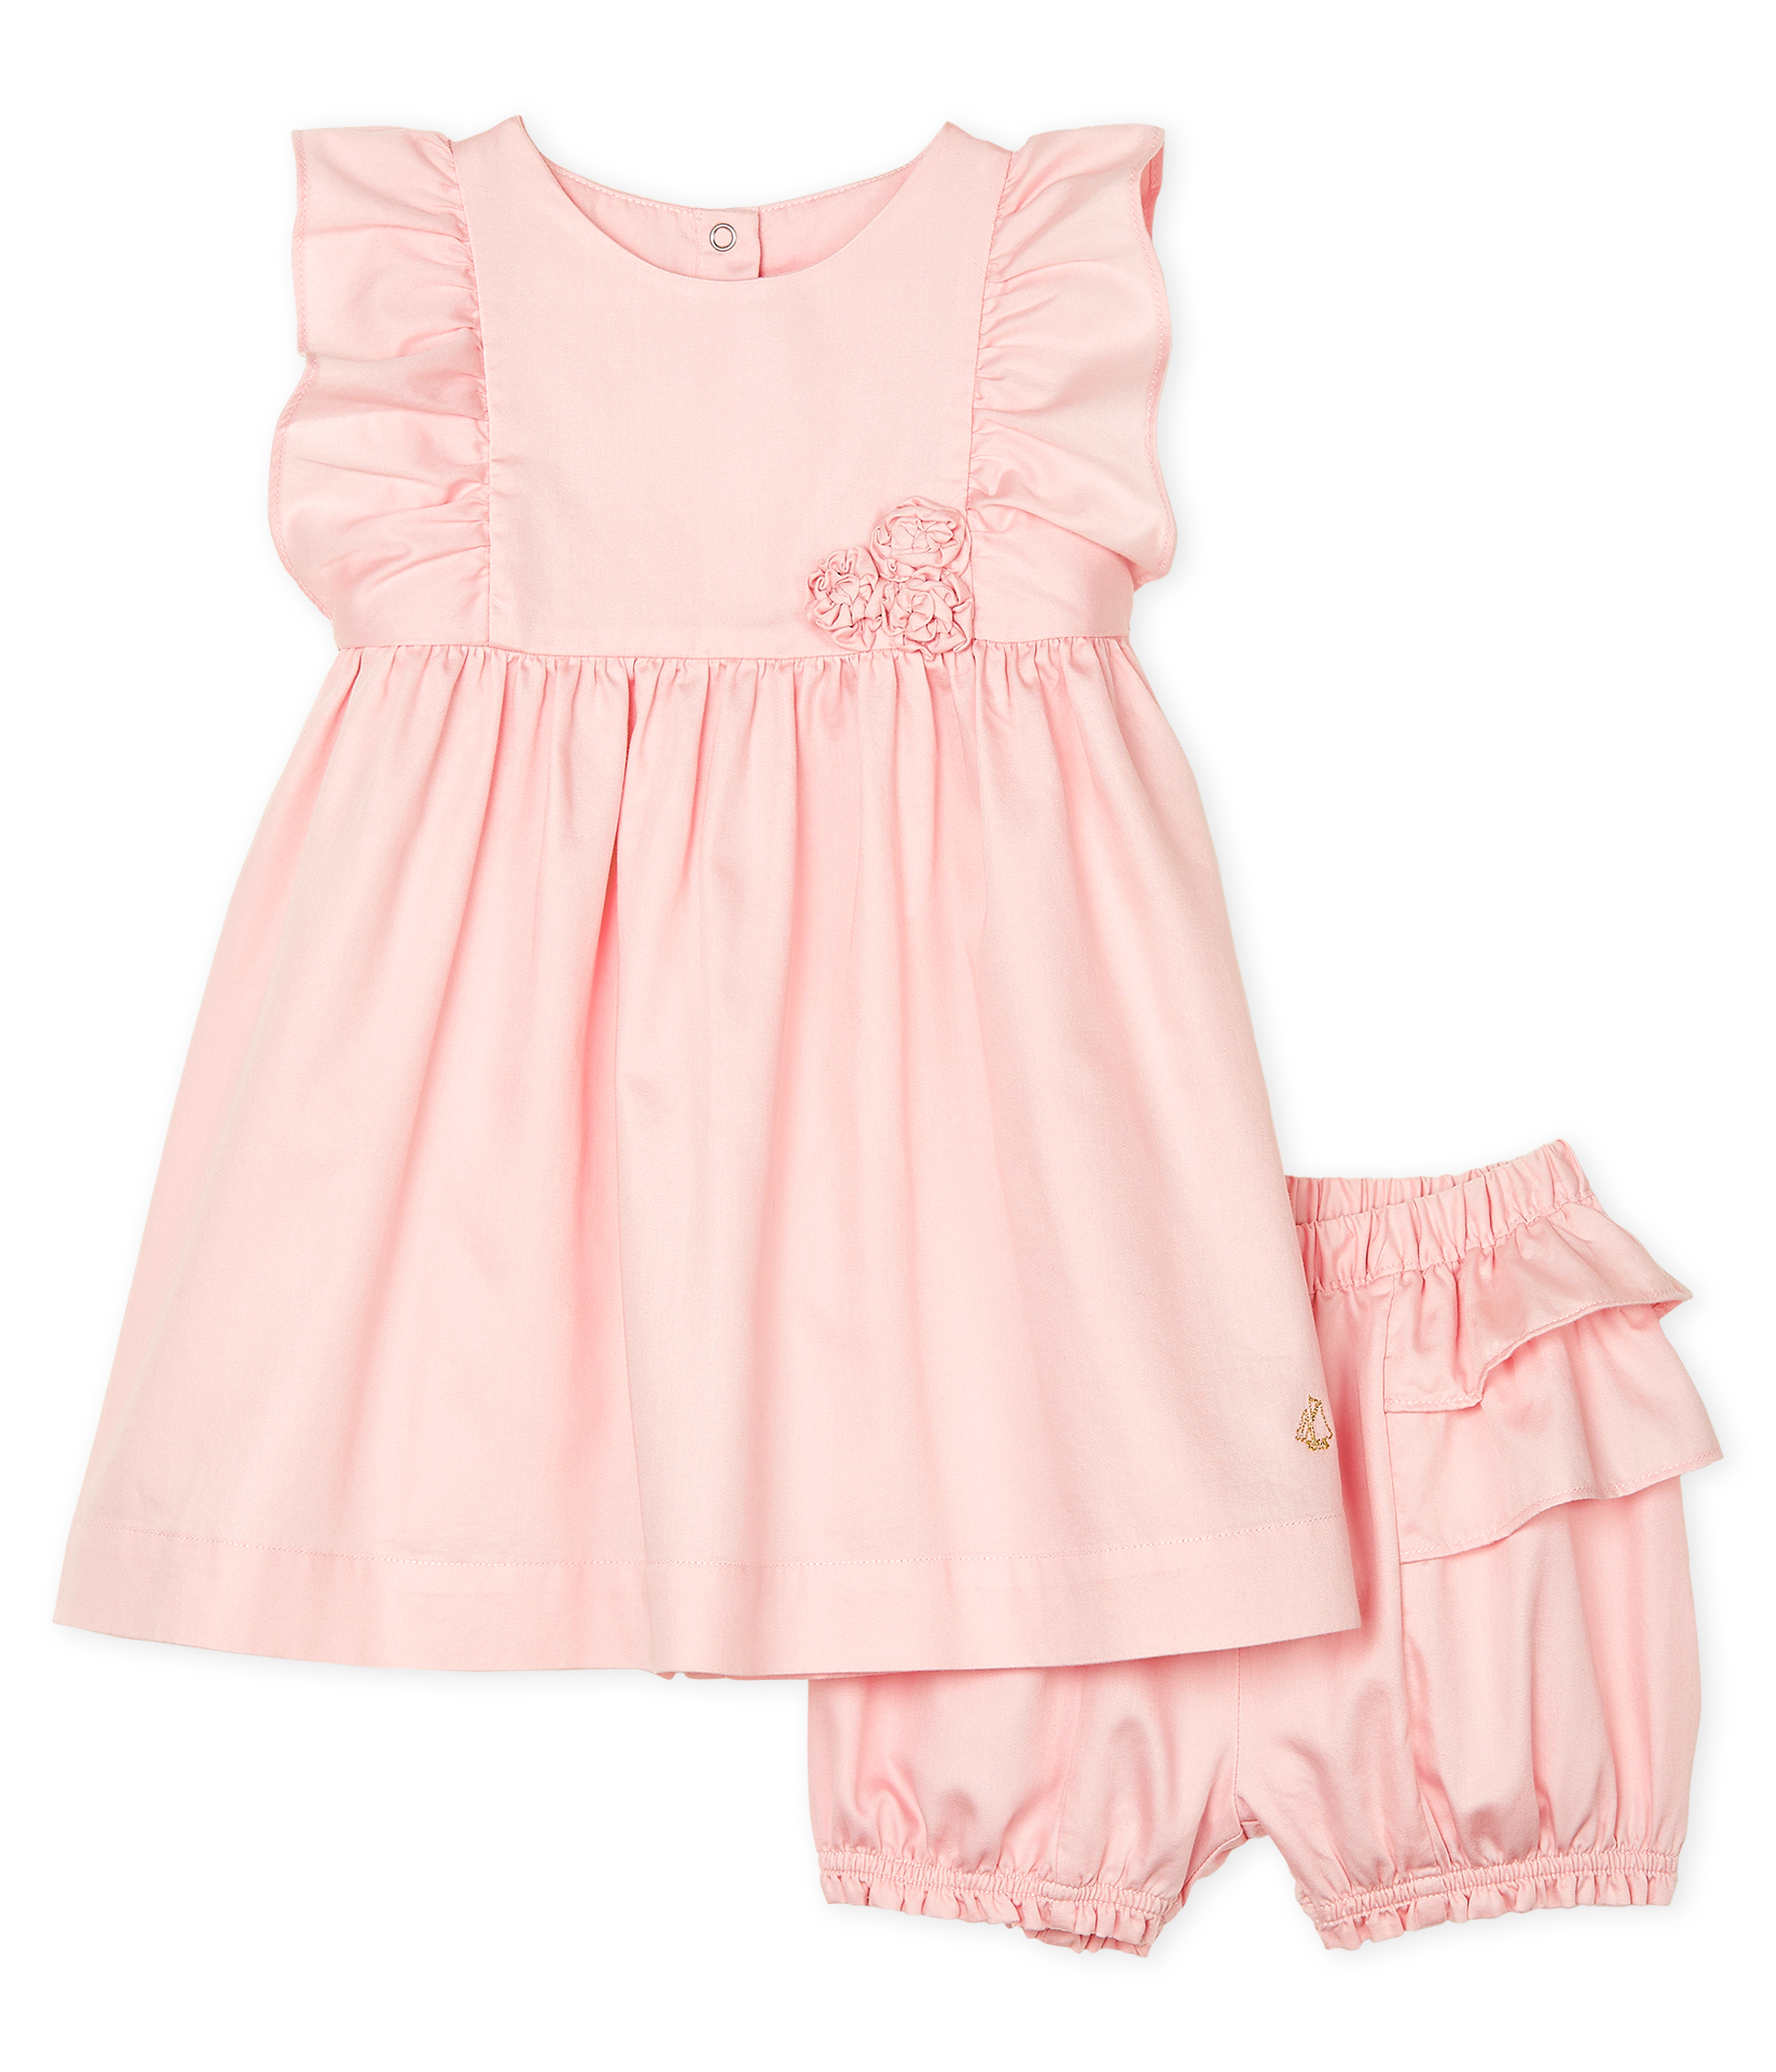 Baby Girls' Satin Dress and Bloomers